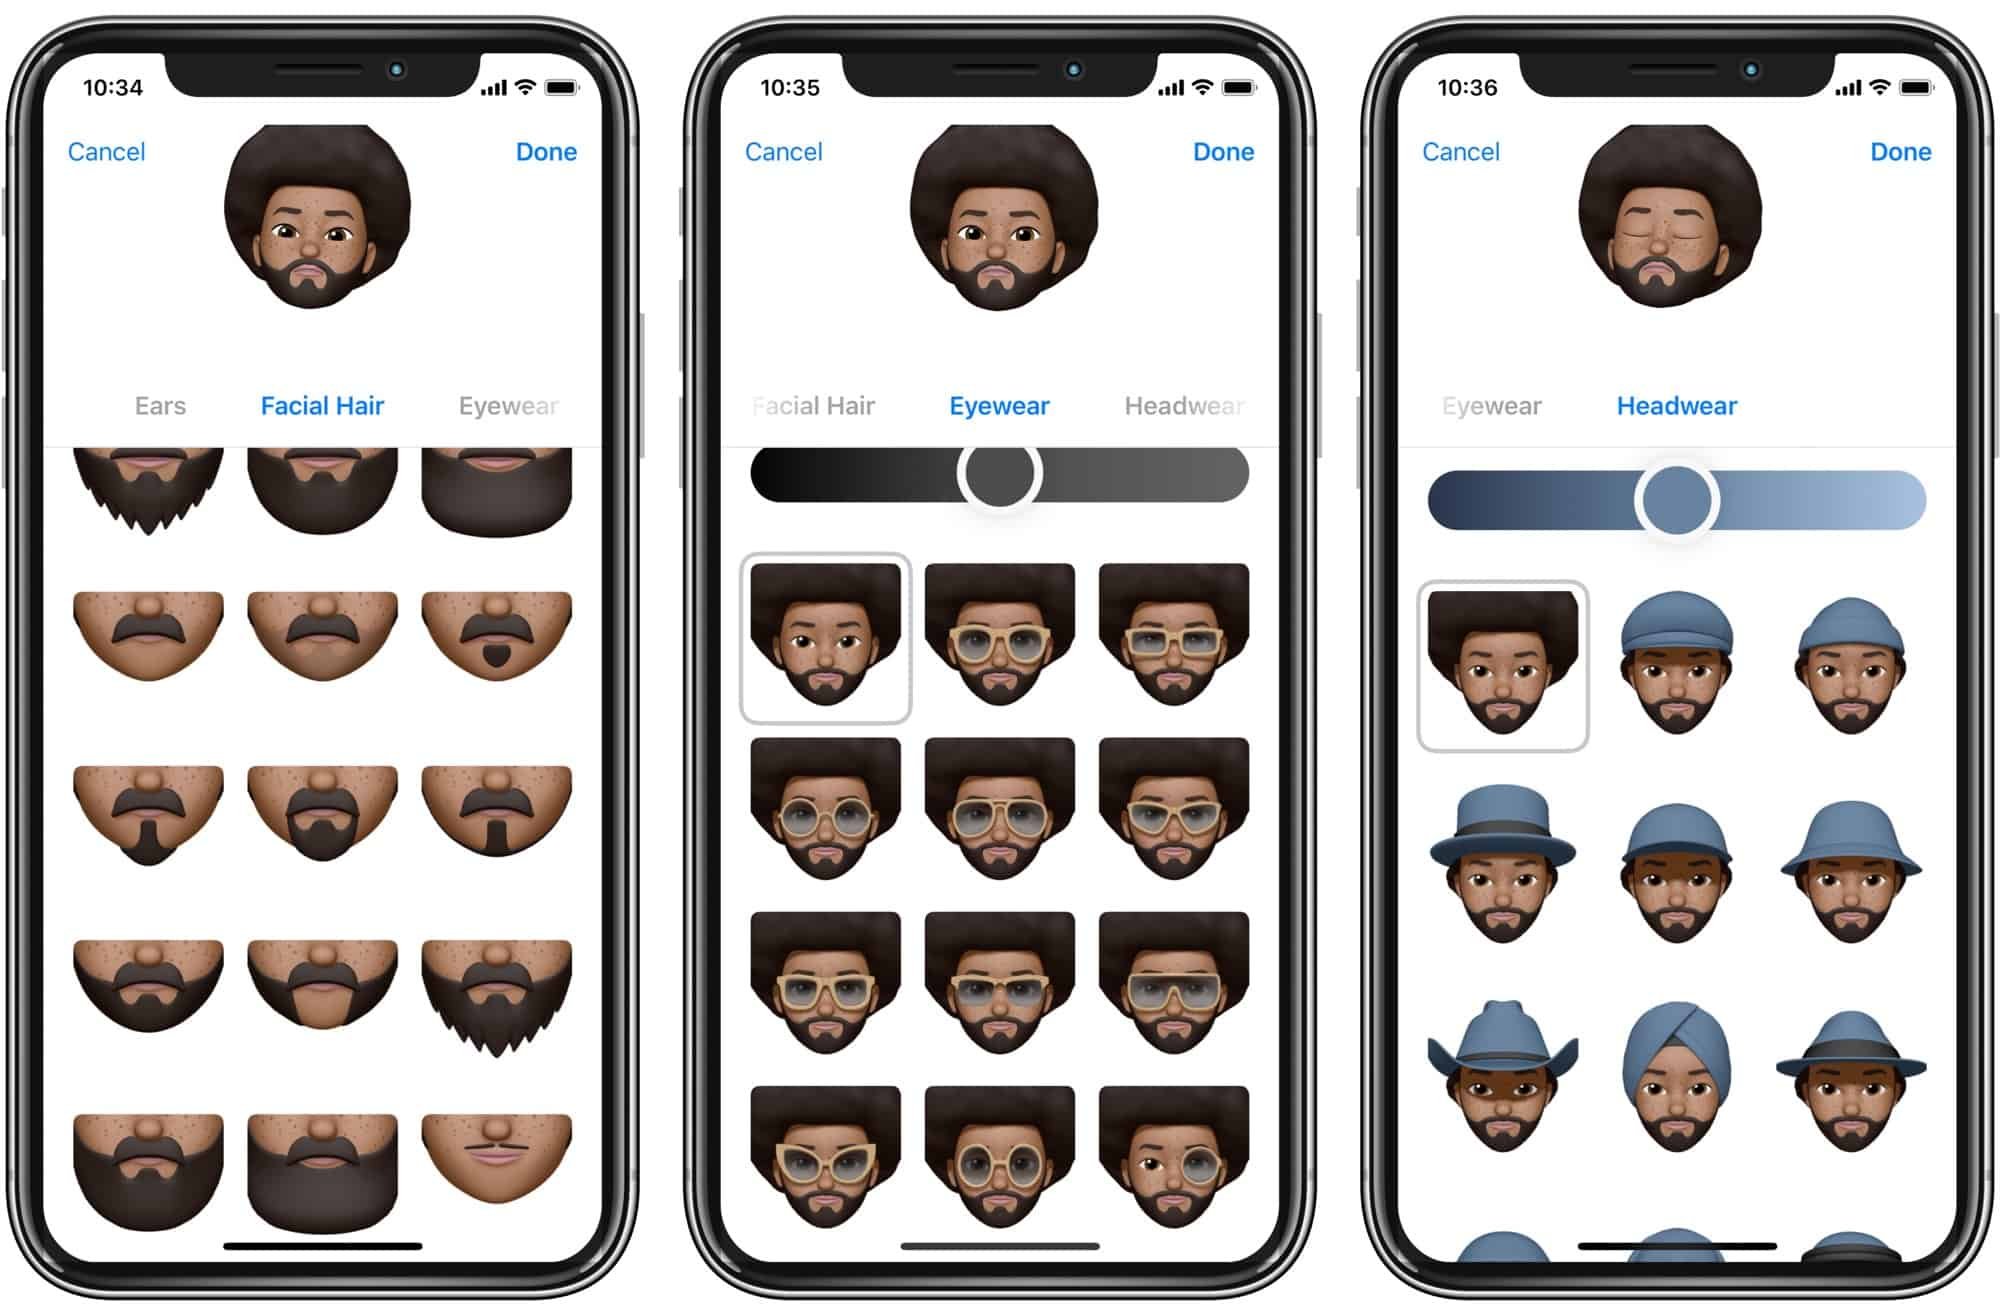 Memoji lets you add hair, beards, headwear and glasses. There are even earrings in there.